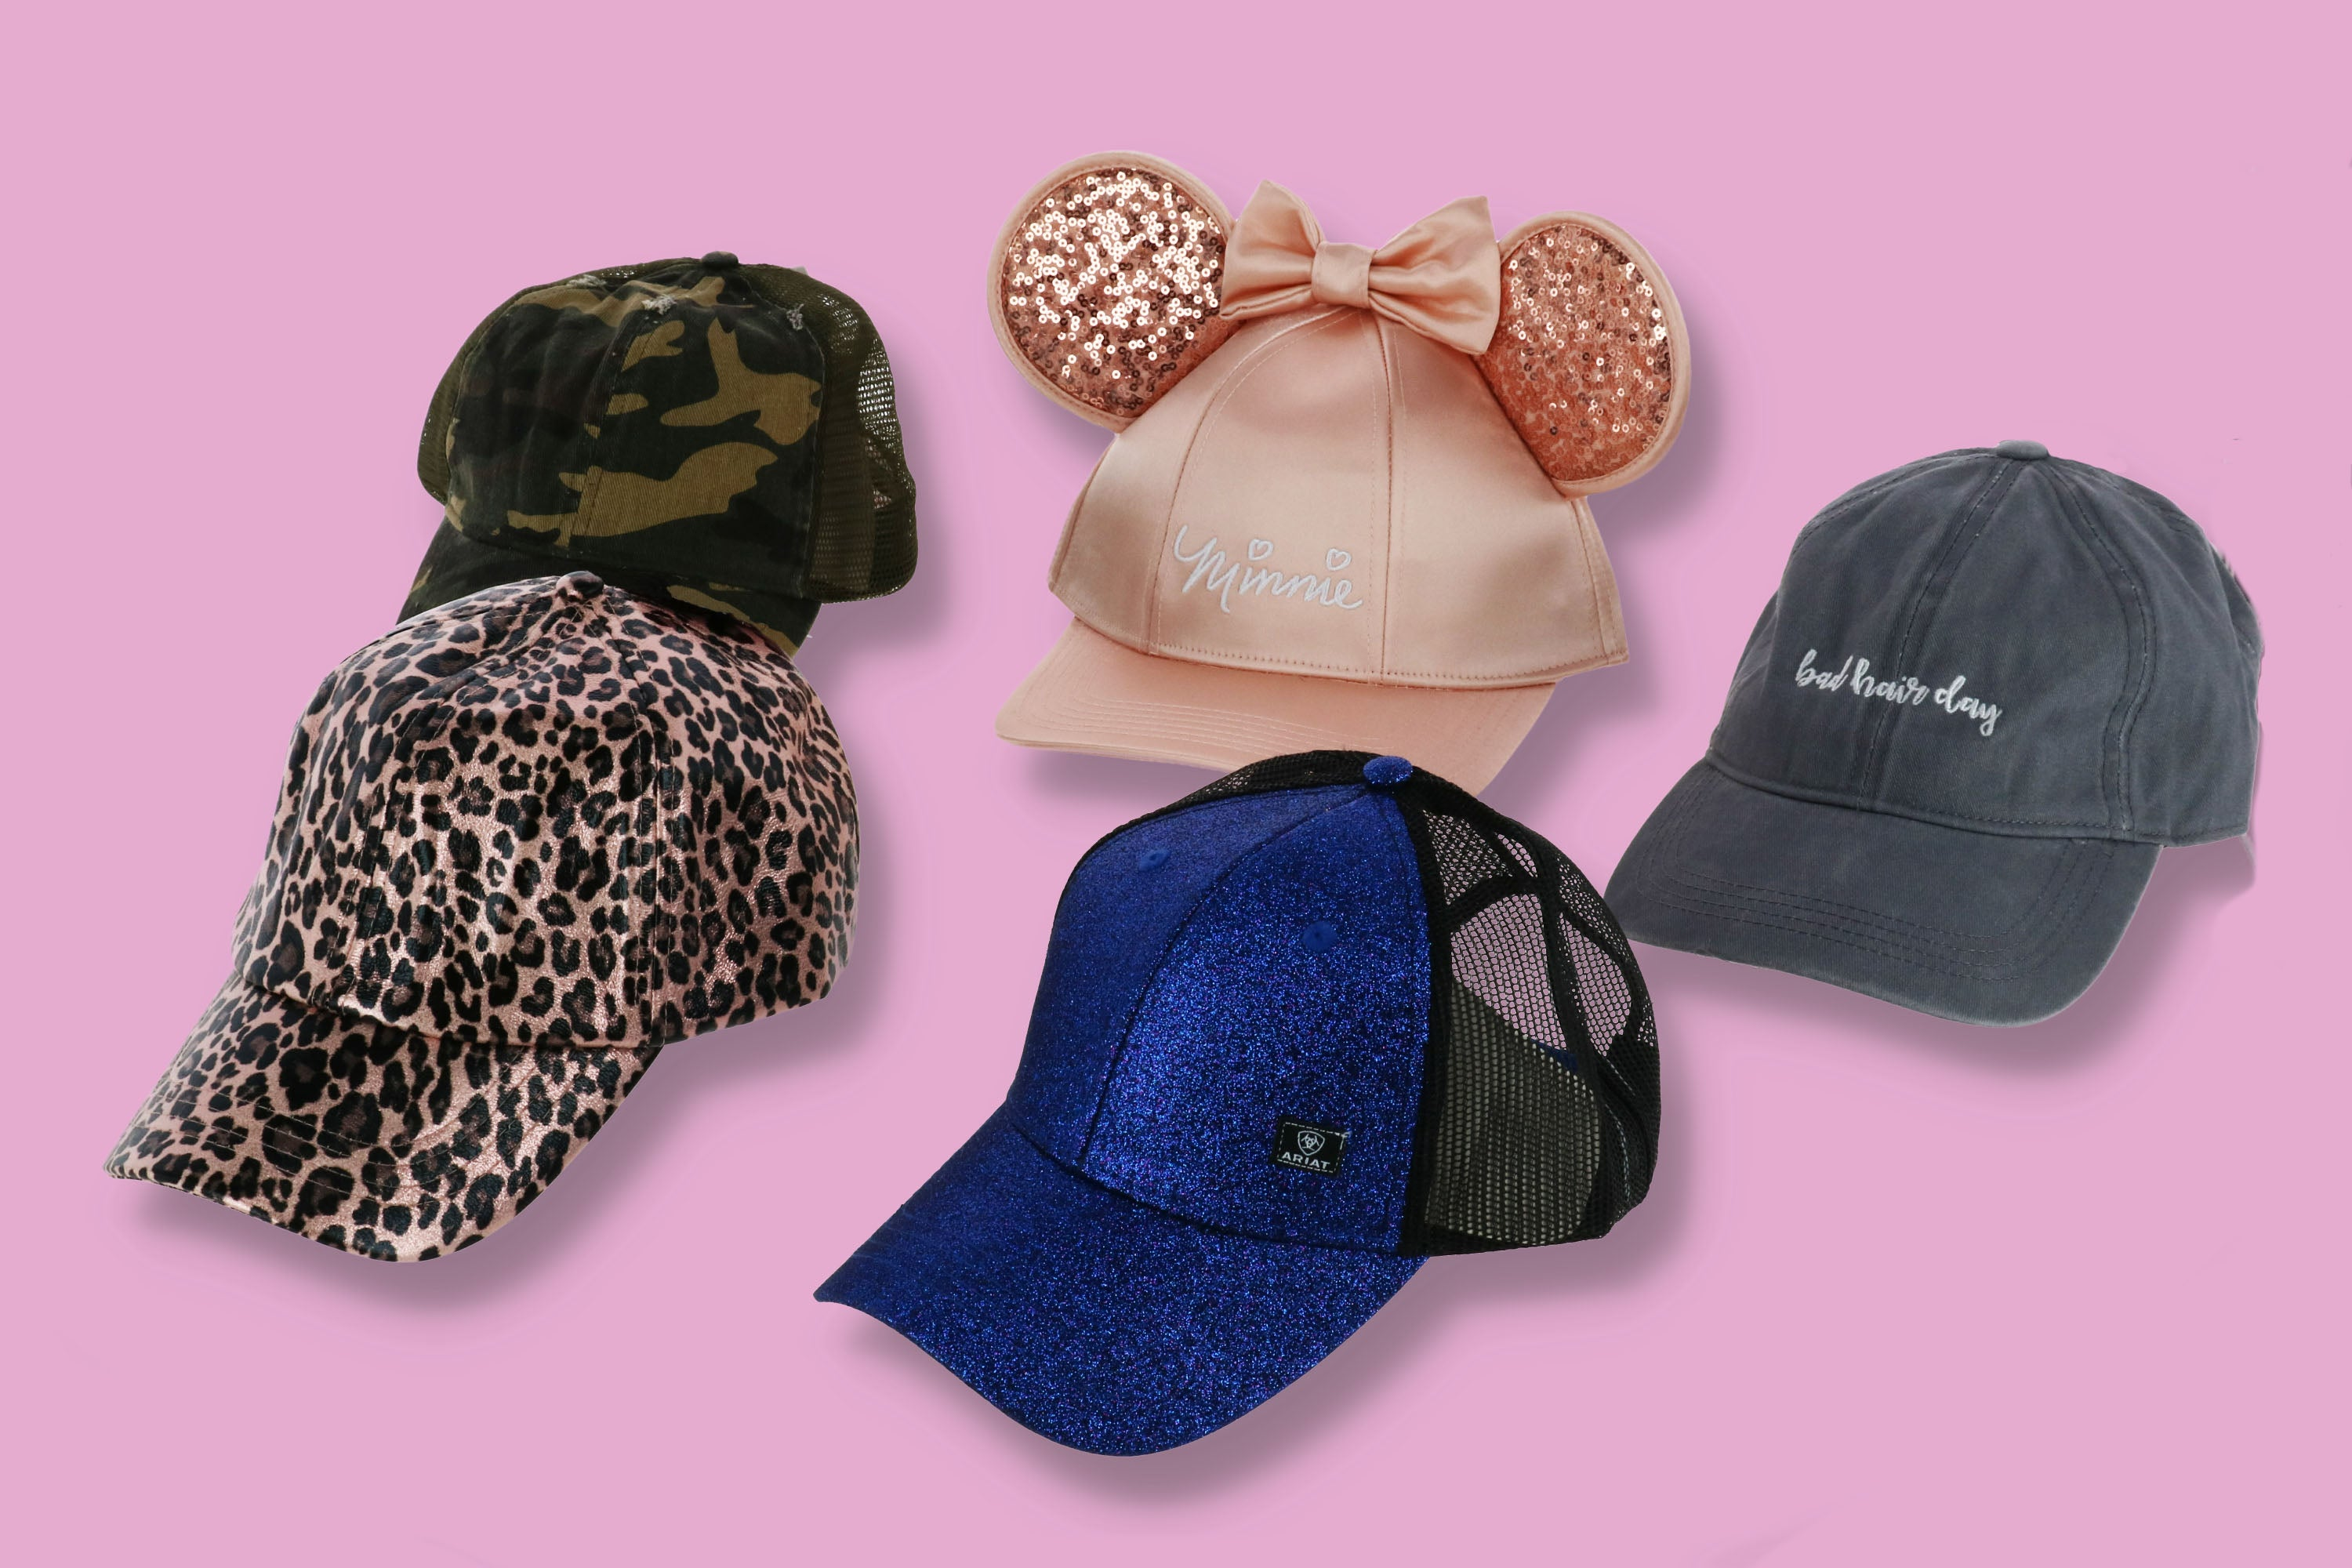 Cute and fun Baseball caps for women at BeltOutlet.com